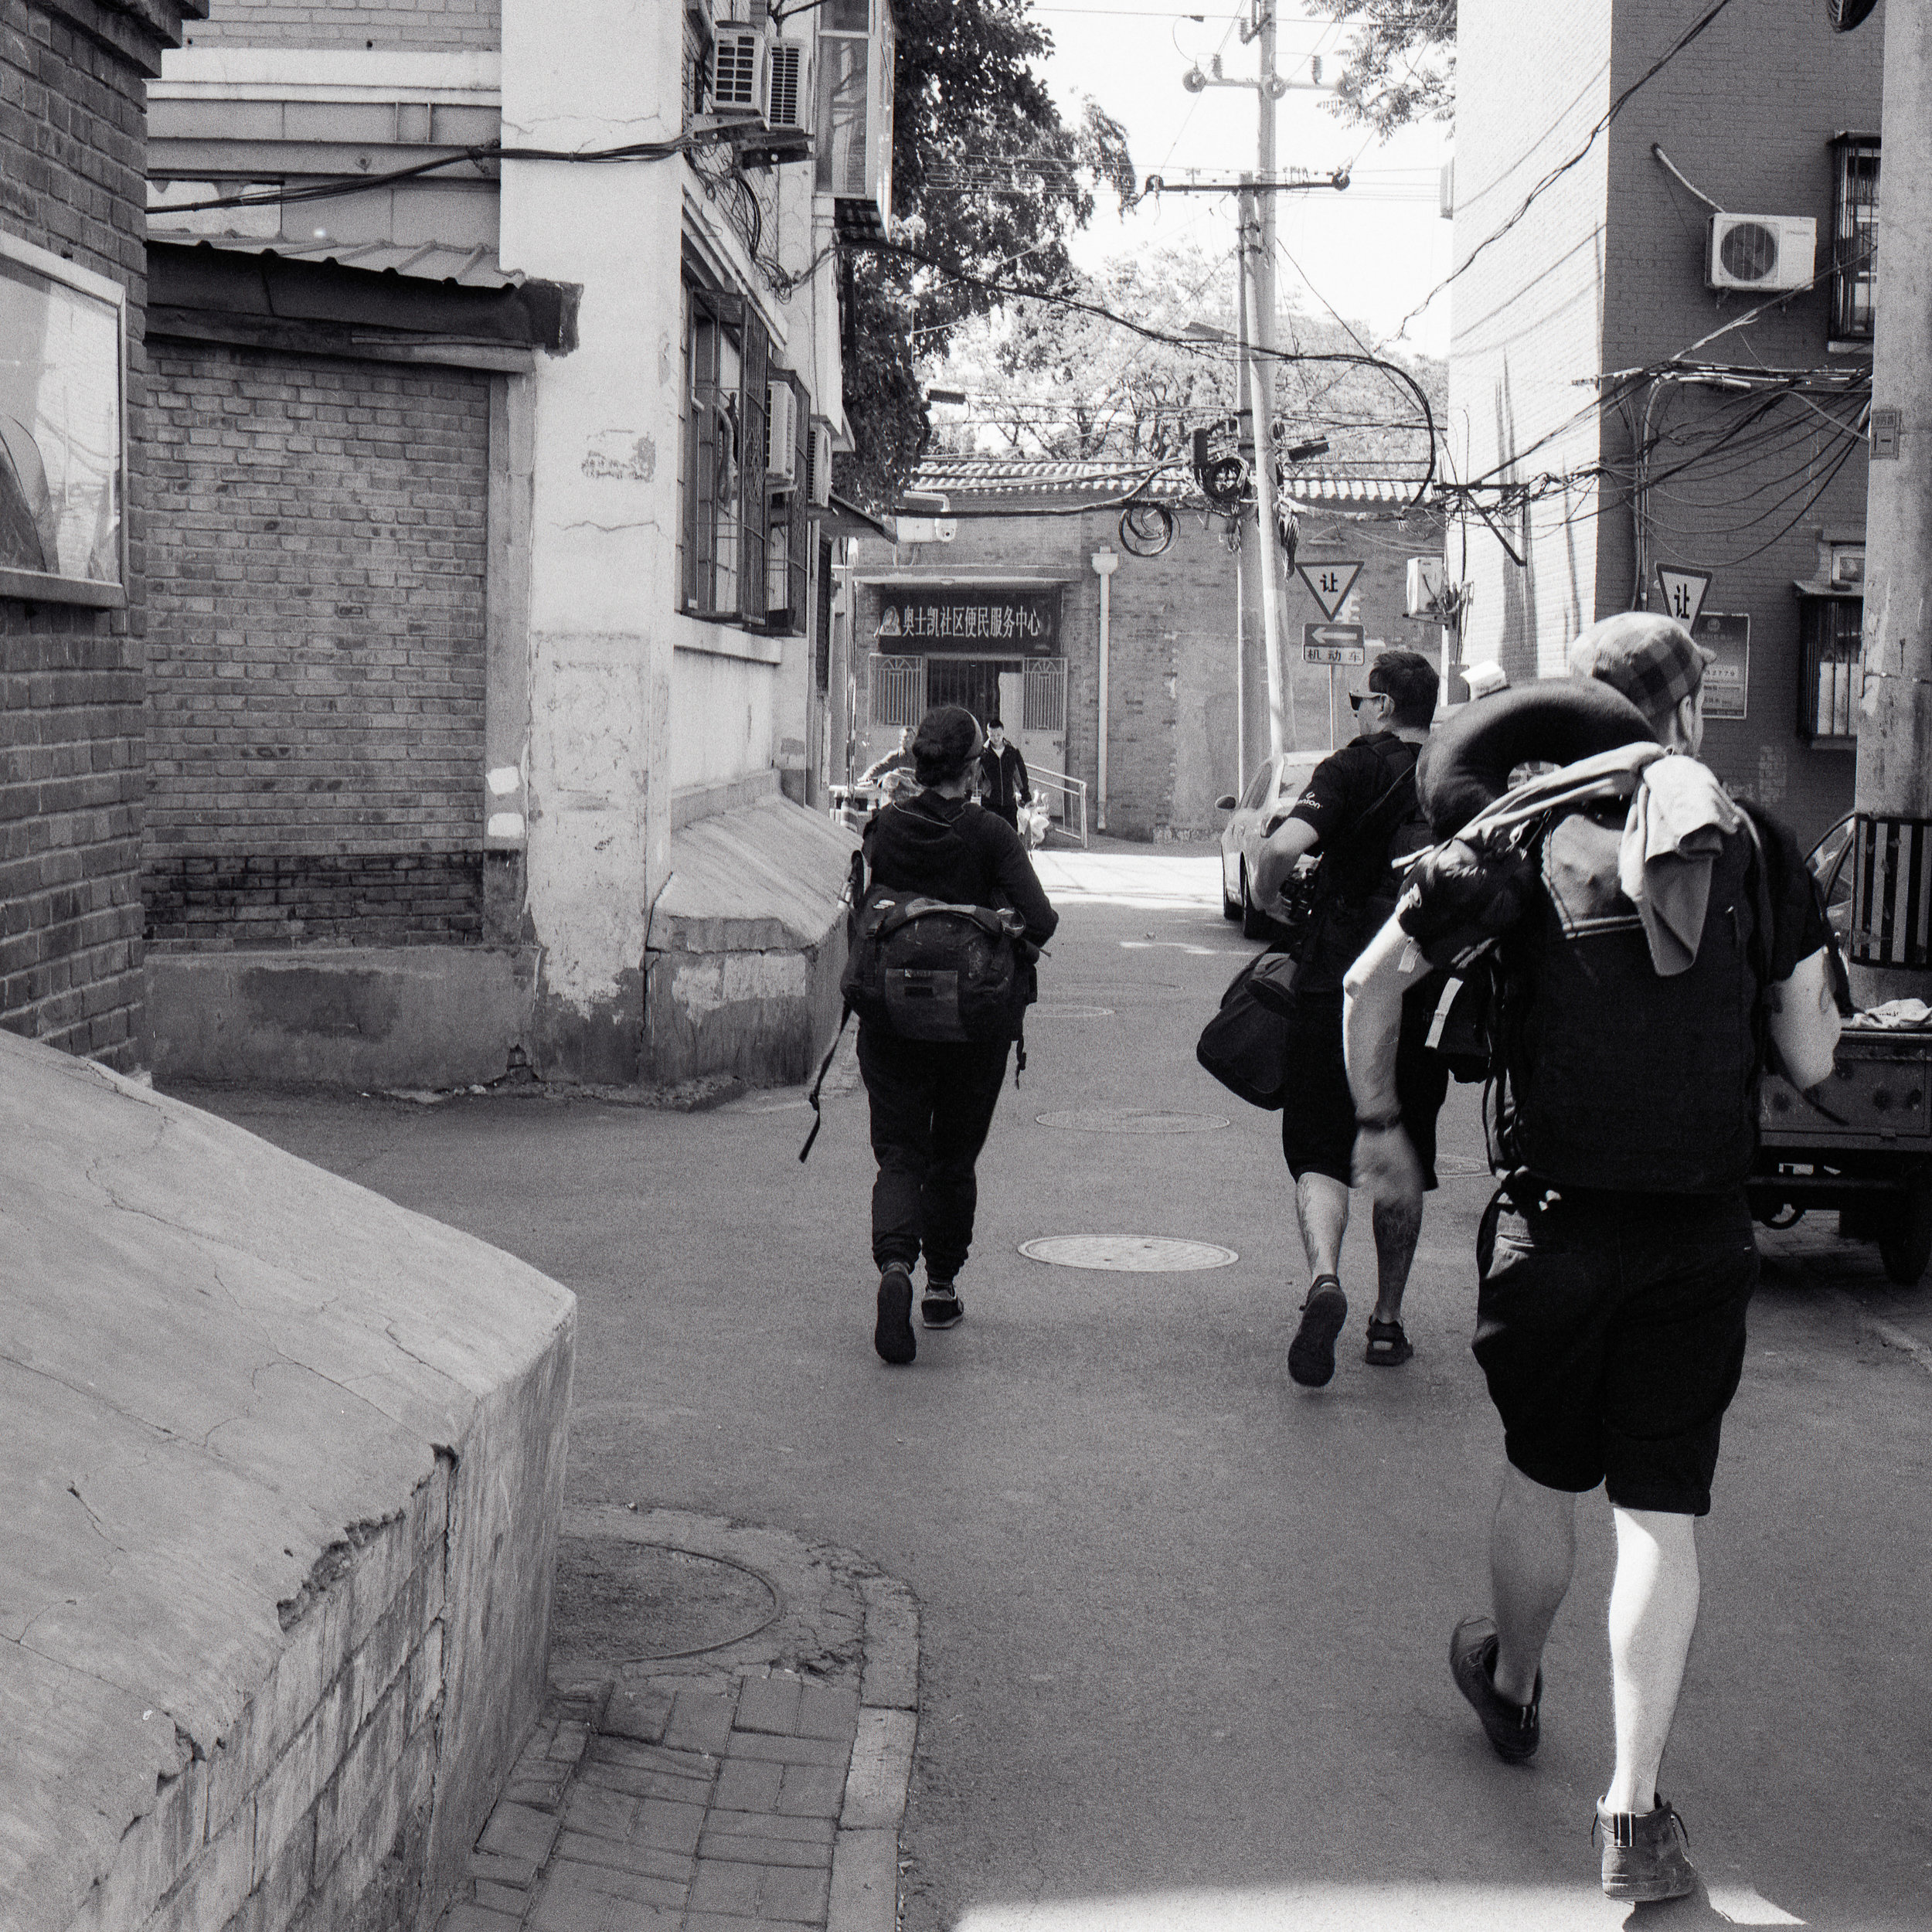 Headed through the back-alley maze to the train station Fuji GF670   Ilford HP5